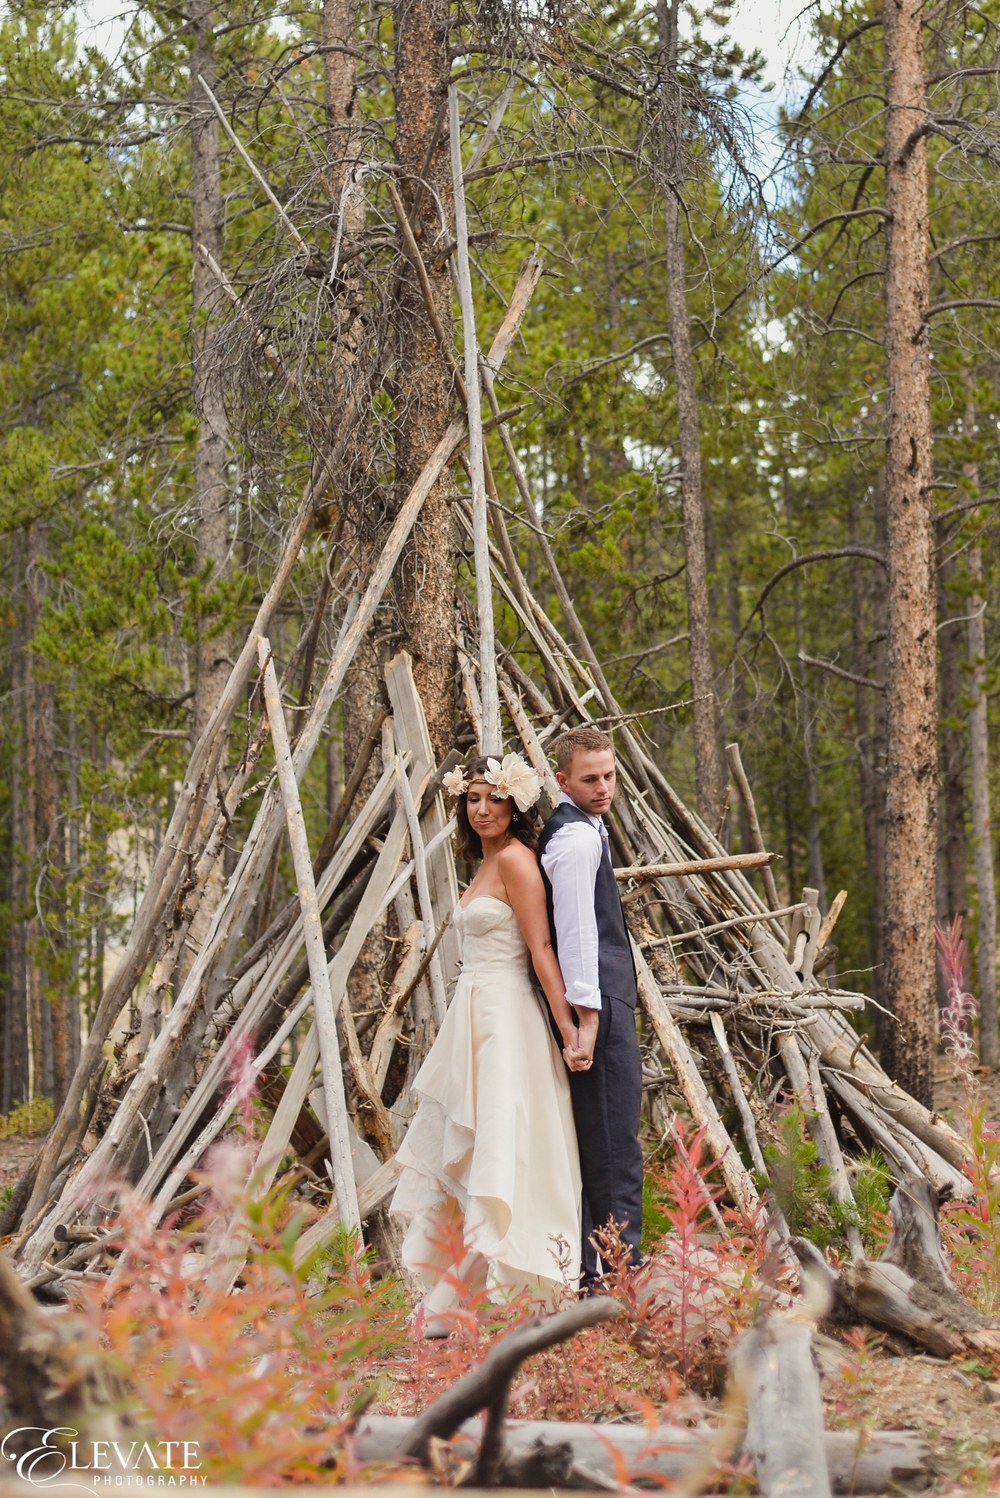 Fall wedding in Breckenridge | RIVINI Martini gown from Little White Dress Bridal Shop | Elevate Photography